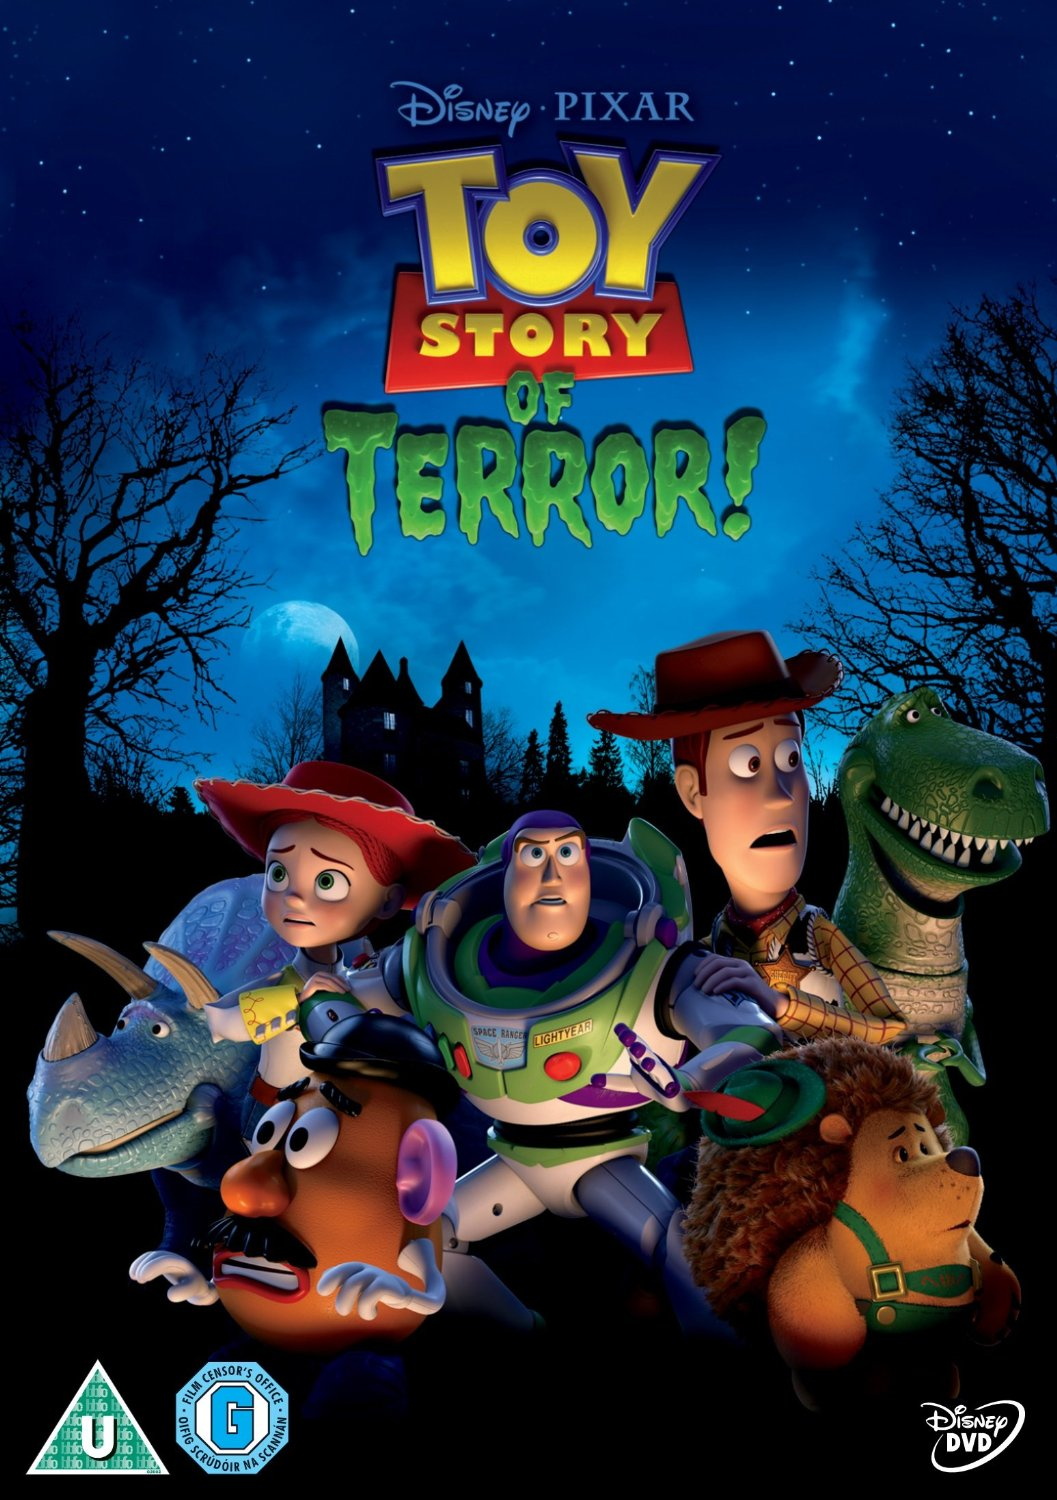 Crash Test Mommy: Halloween movies perfect for watching with the kids